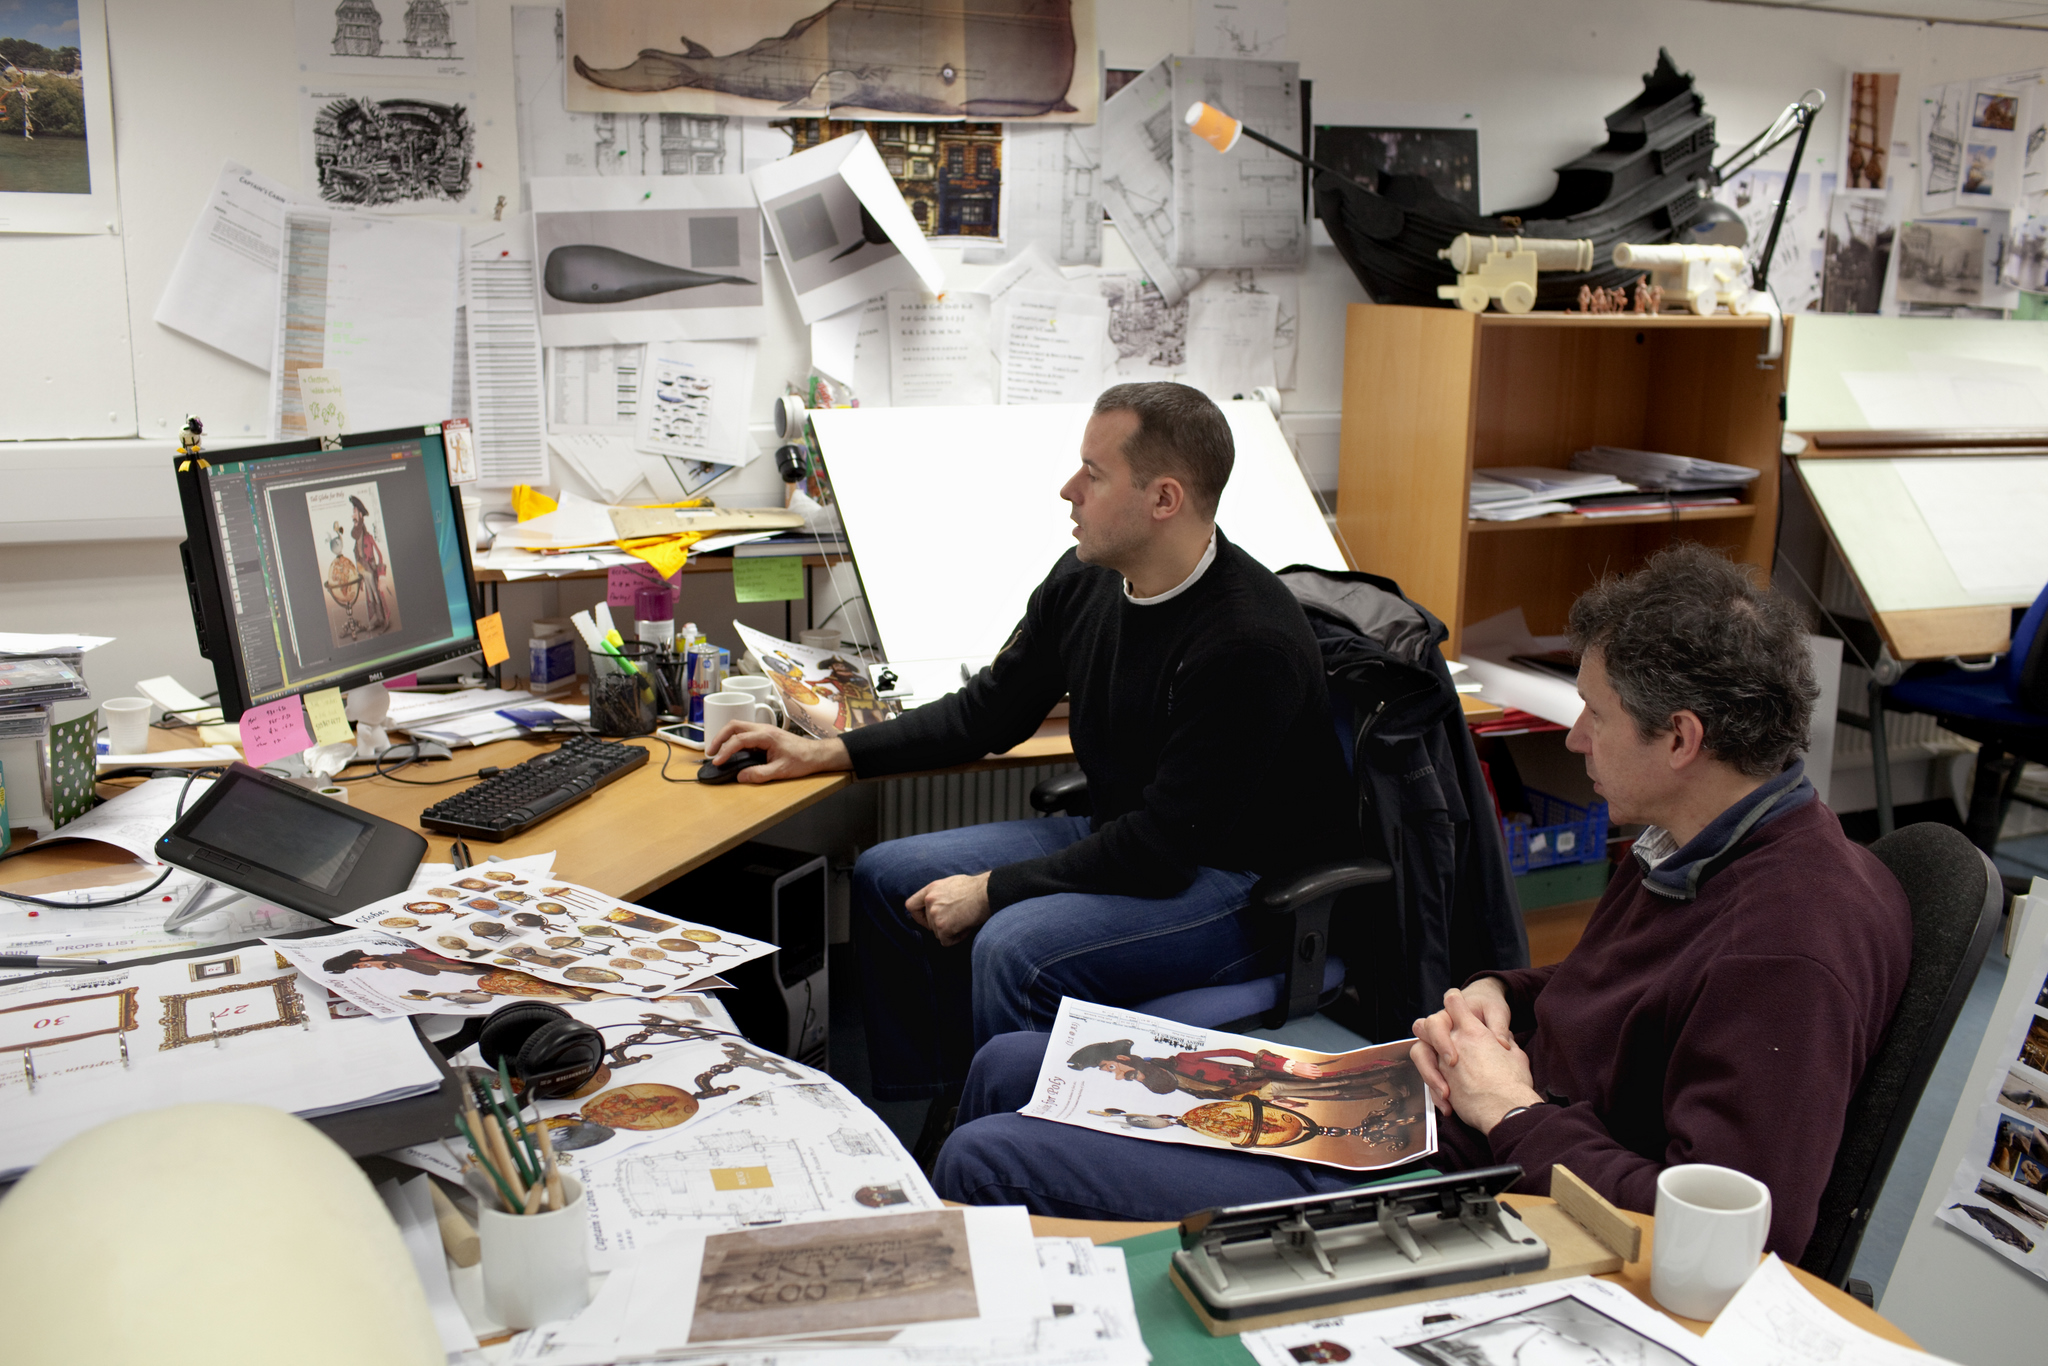 Matt Saunders, Art Director, and Jeff Newitt, Co-Director, go over the set designs on the set of THE PIRATES! BAND OF MISFITS.